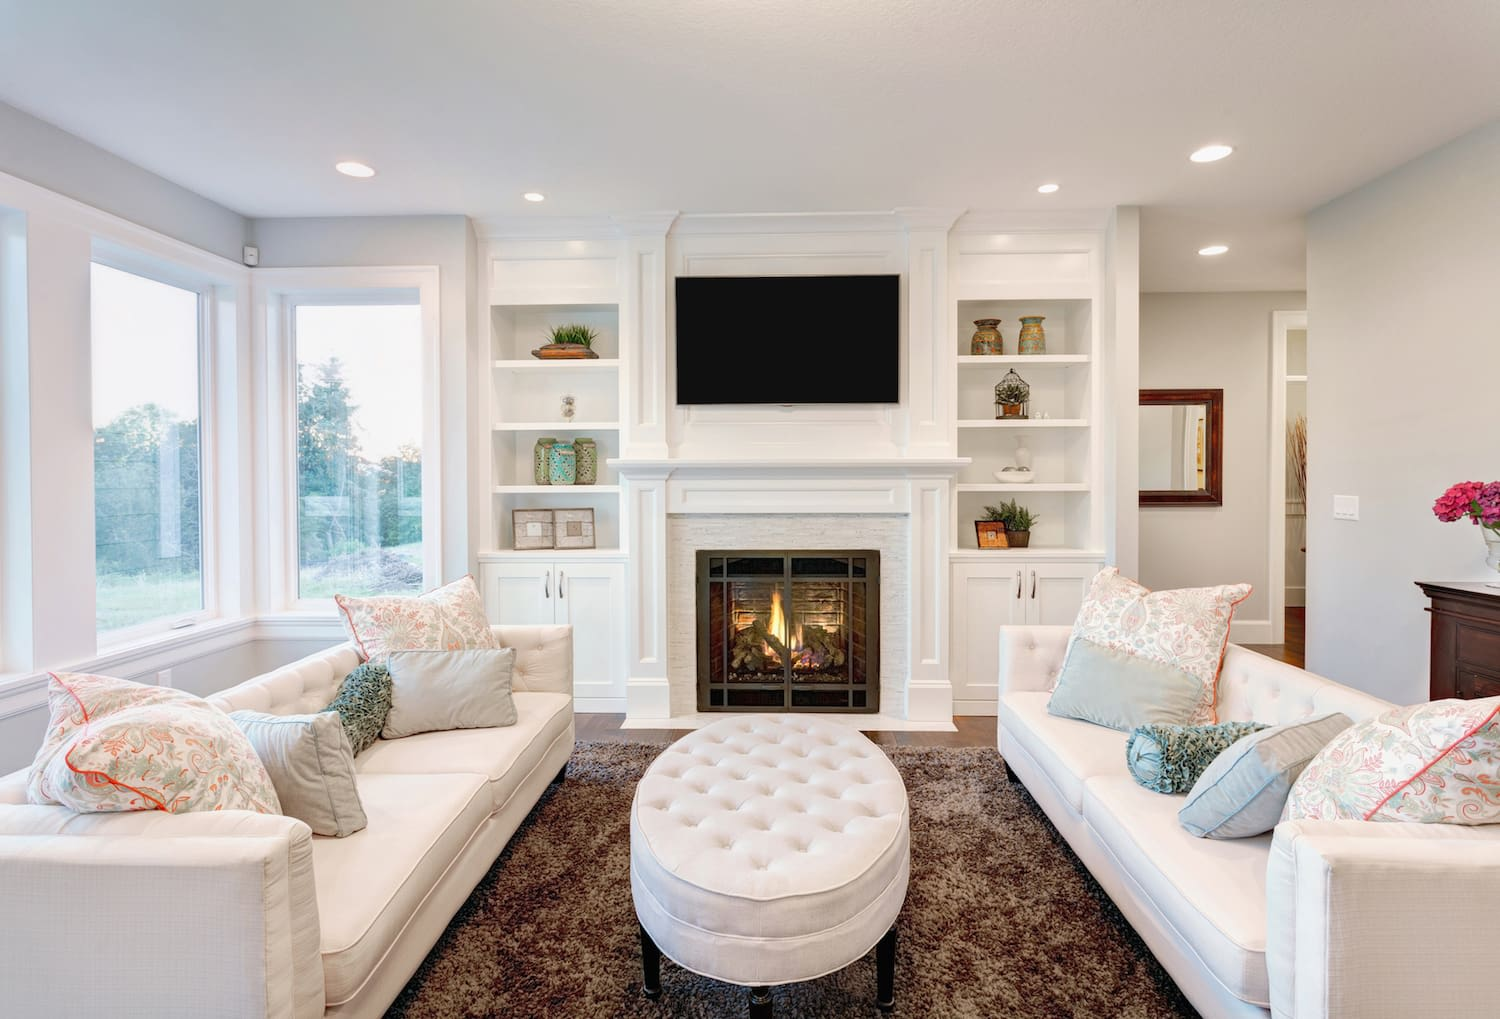 Fireplaces also have a high ROI in colder climates